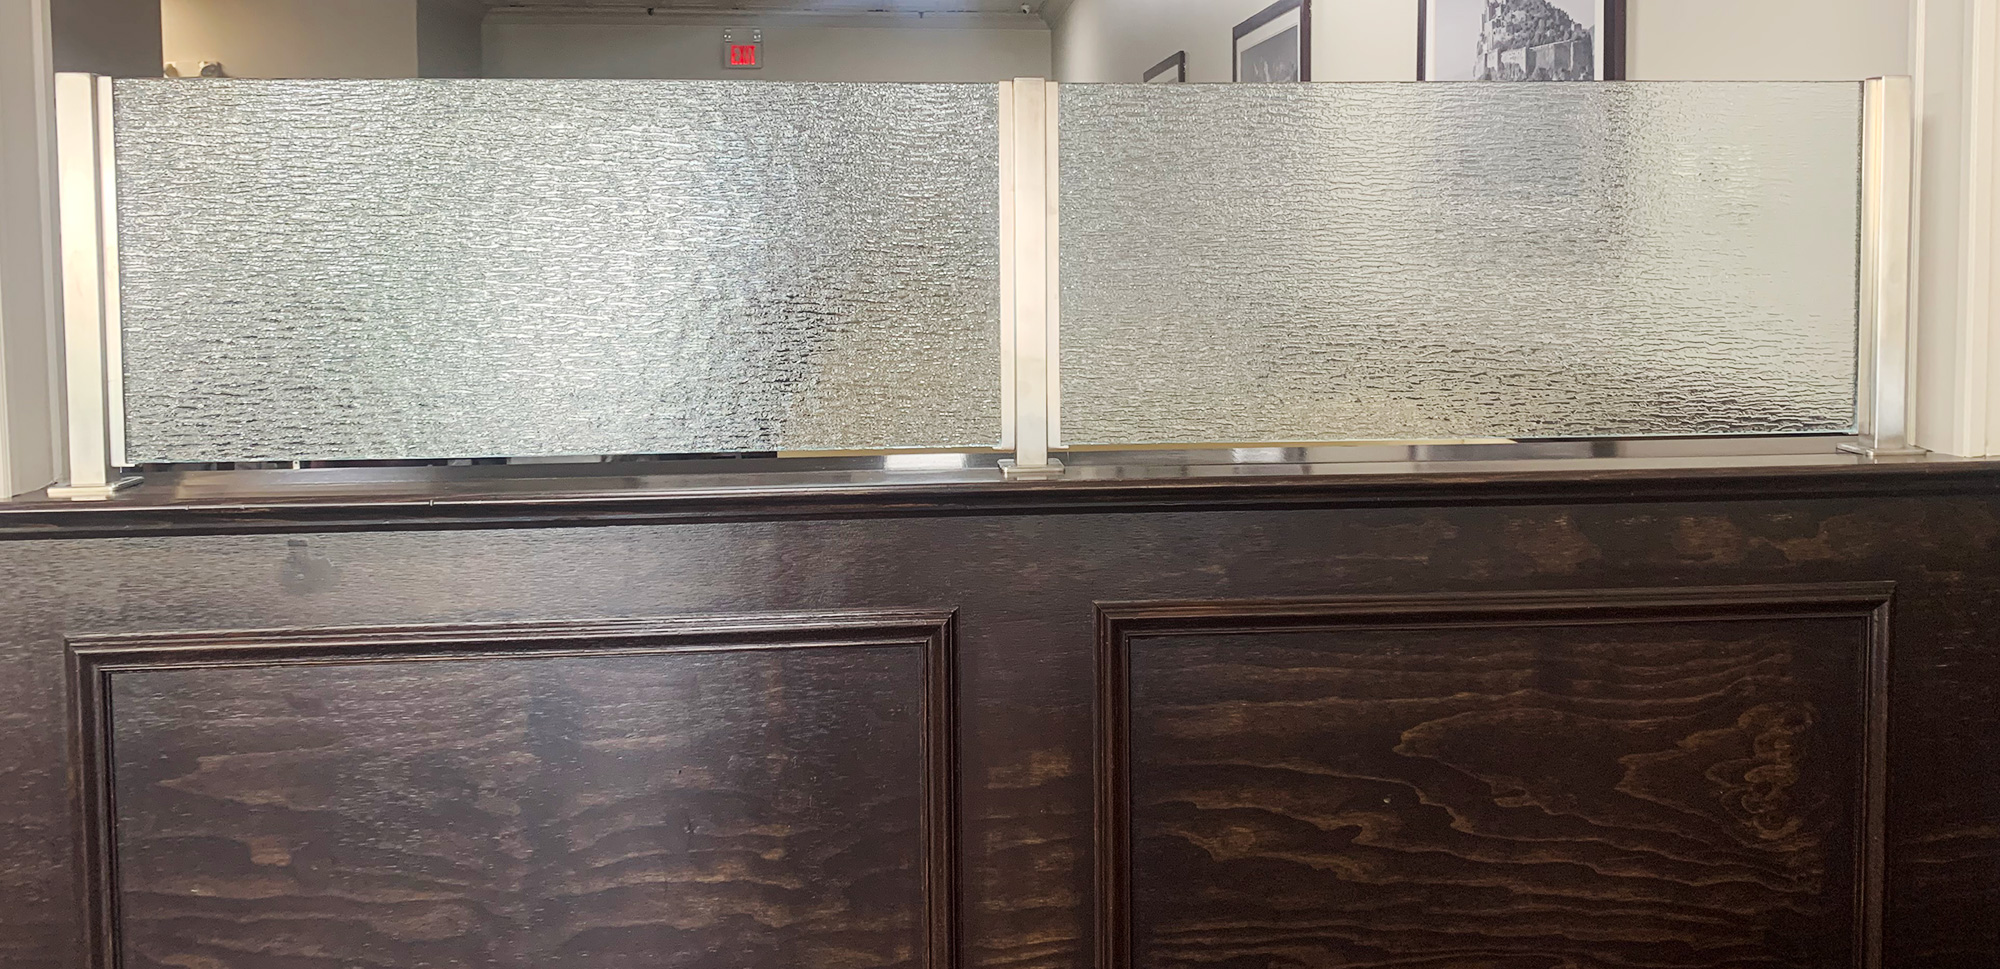 Satin Stainless Steel Partitions with Rain Glass | Franco's Pizza - West Caldwell, NJ